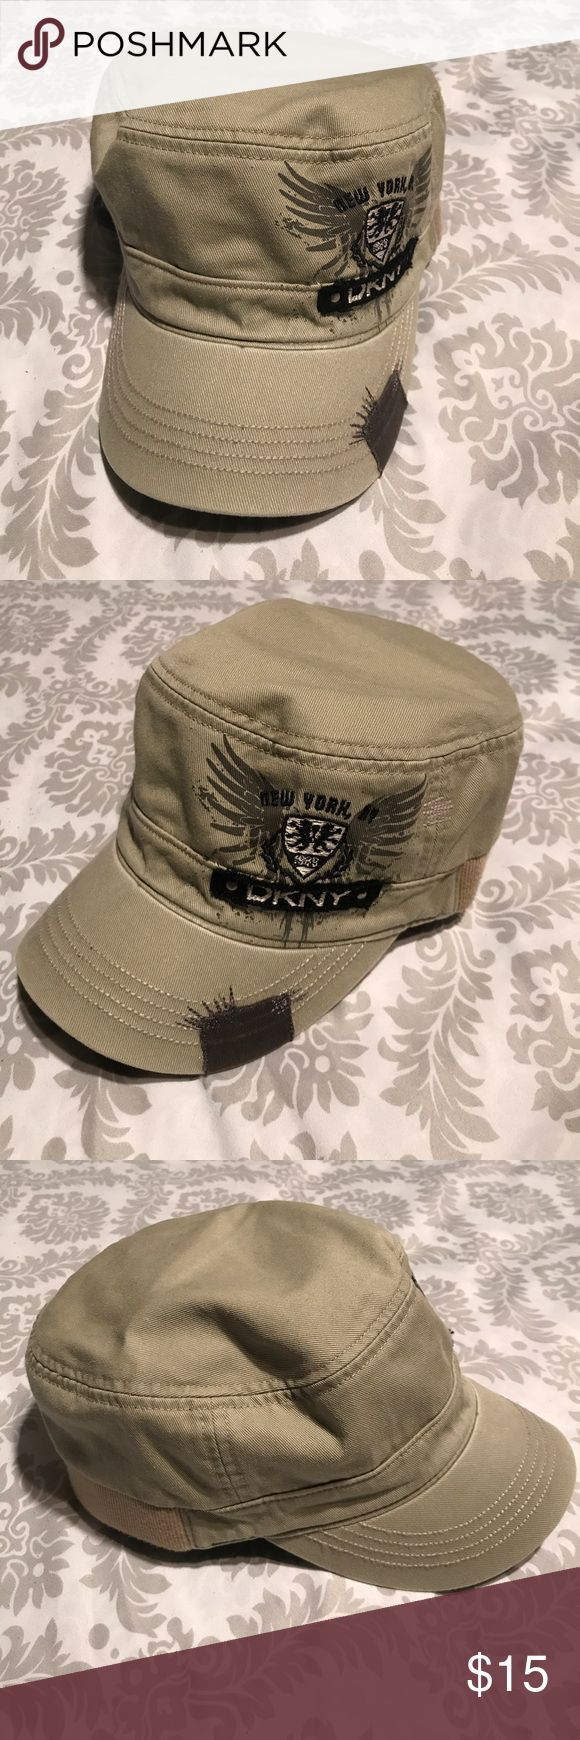 DKNY Unisex Military Hat Army Cap. EUC. OS DKNY Unisex Military Hat Army Cap. EUC. OS. 100% Cotton. Elastic backing for extra fitting DKNYC Accessories Hats